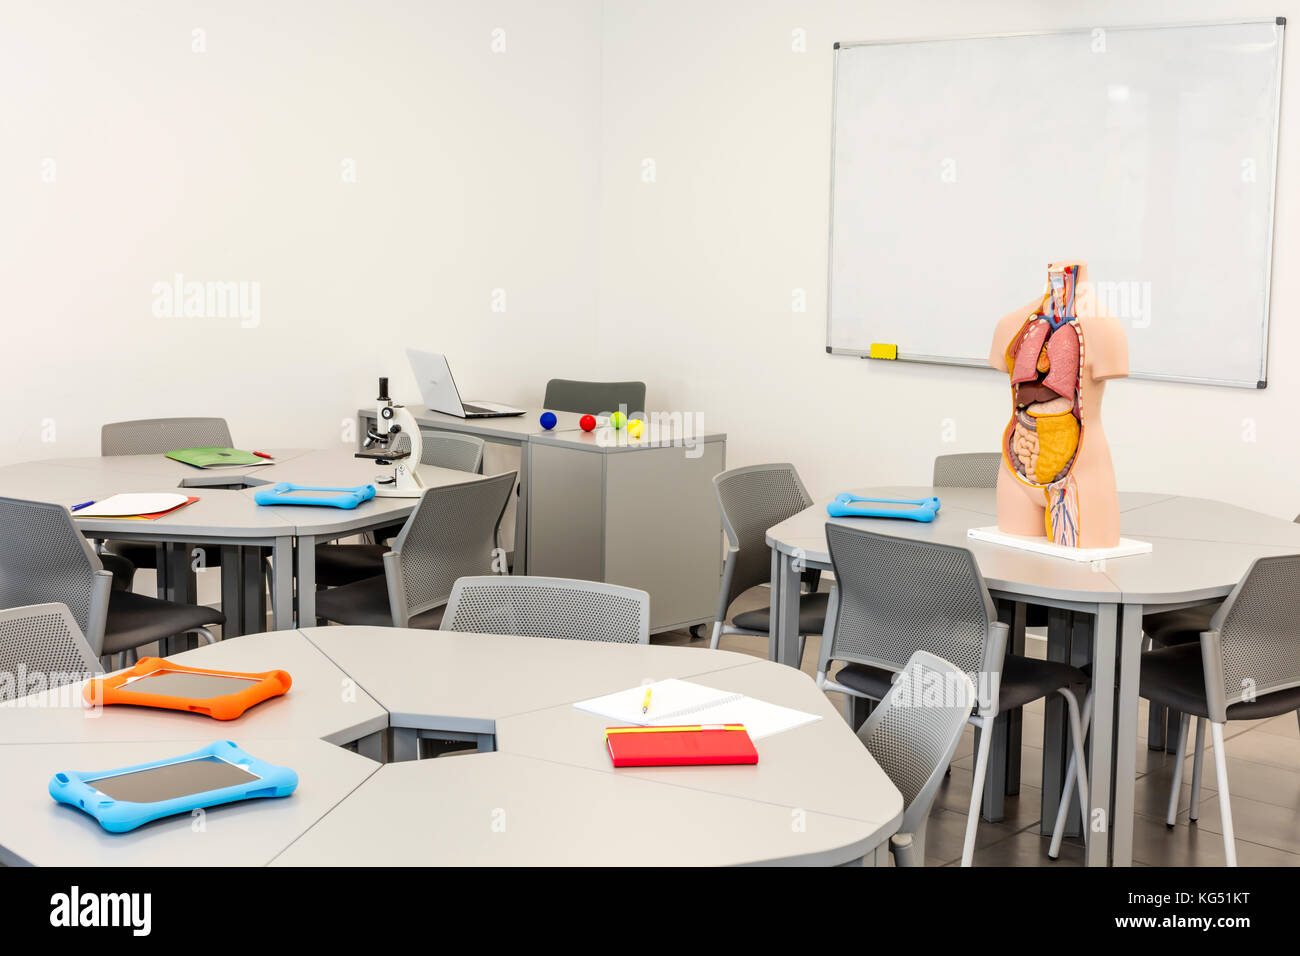 Modern Classroom Model : White background classroom learn stock photos